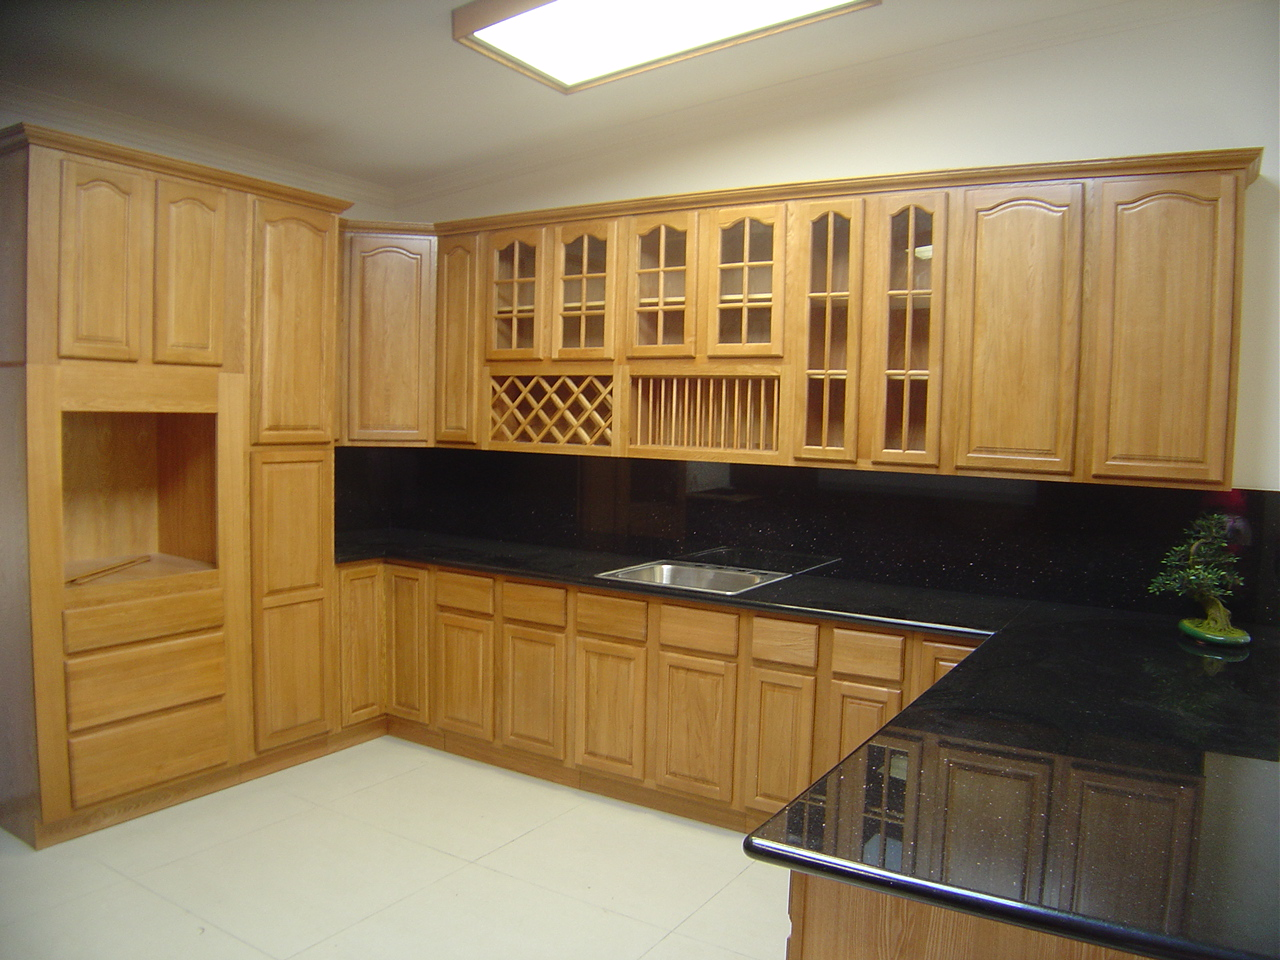 Modern Kitchen In Wooden Finish photo - 7